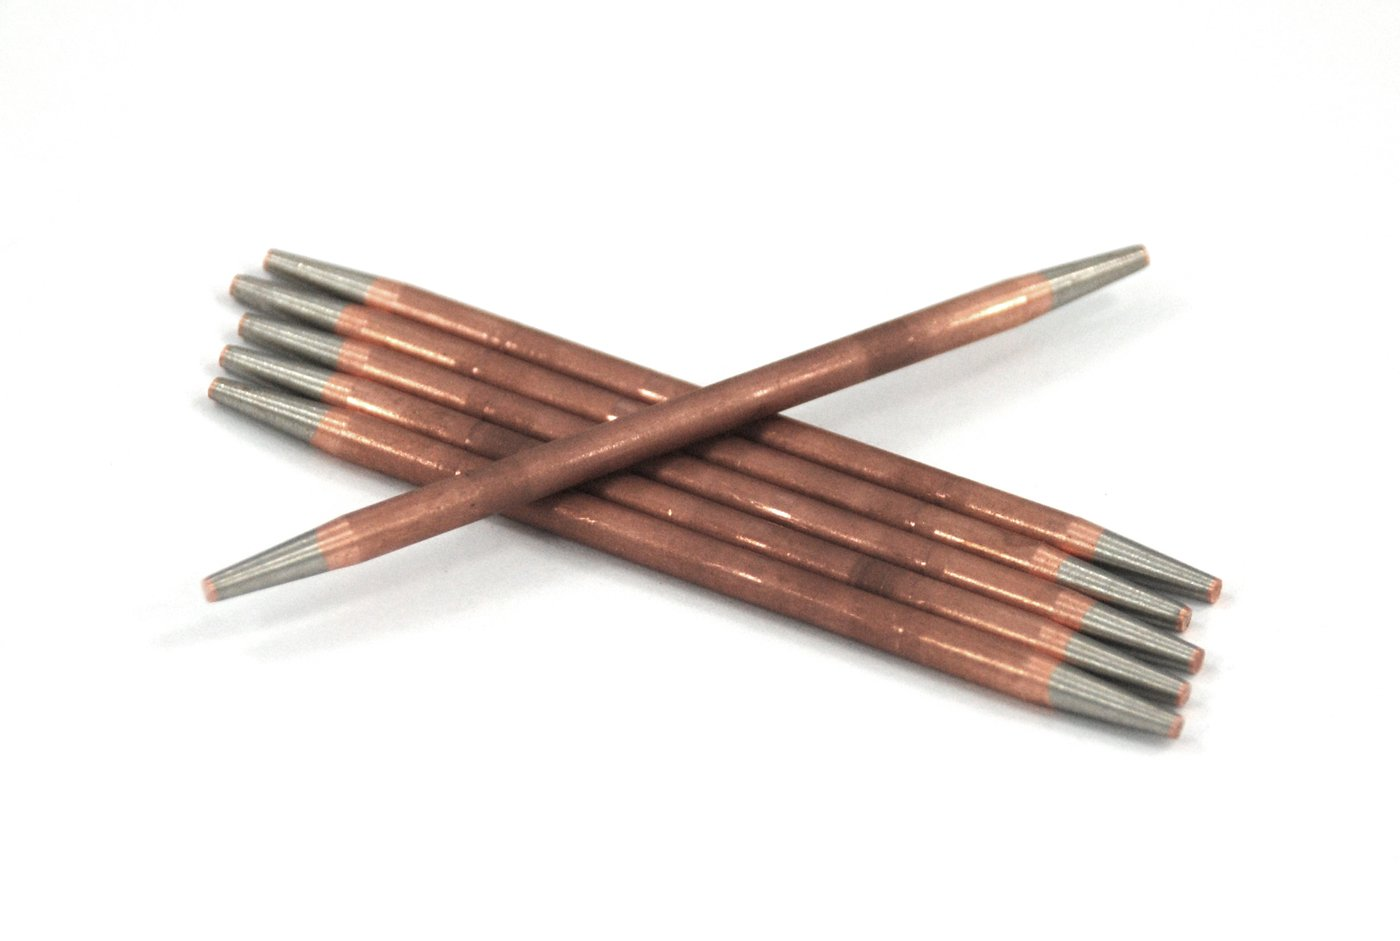 American Beauty 10582 Steel Electrodes for Resistance Soldering, 5/64'' Diameter x  3'' Length (Pack of 6) by American Beauty Tools (Image #1)